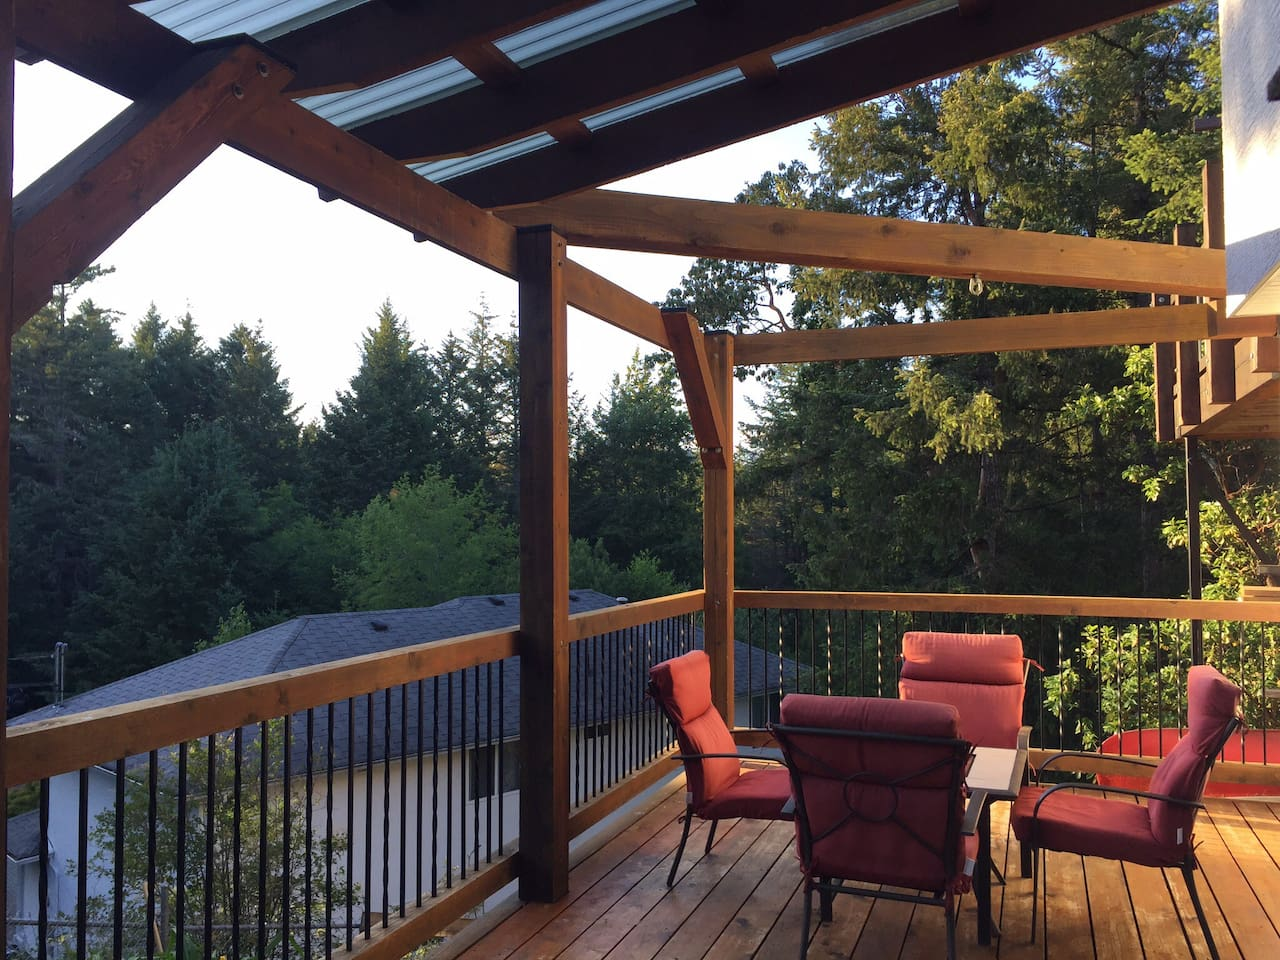 Private deck gets full sun in afternoon and evening, ideal for relaxing after a long day sight seeing. It is quiet and over looks Thetis Lake park.